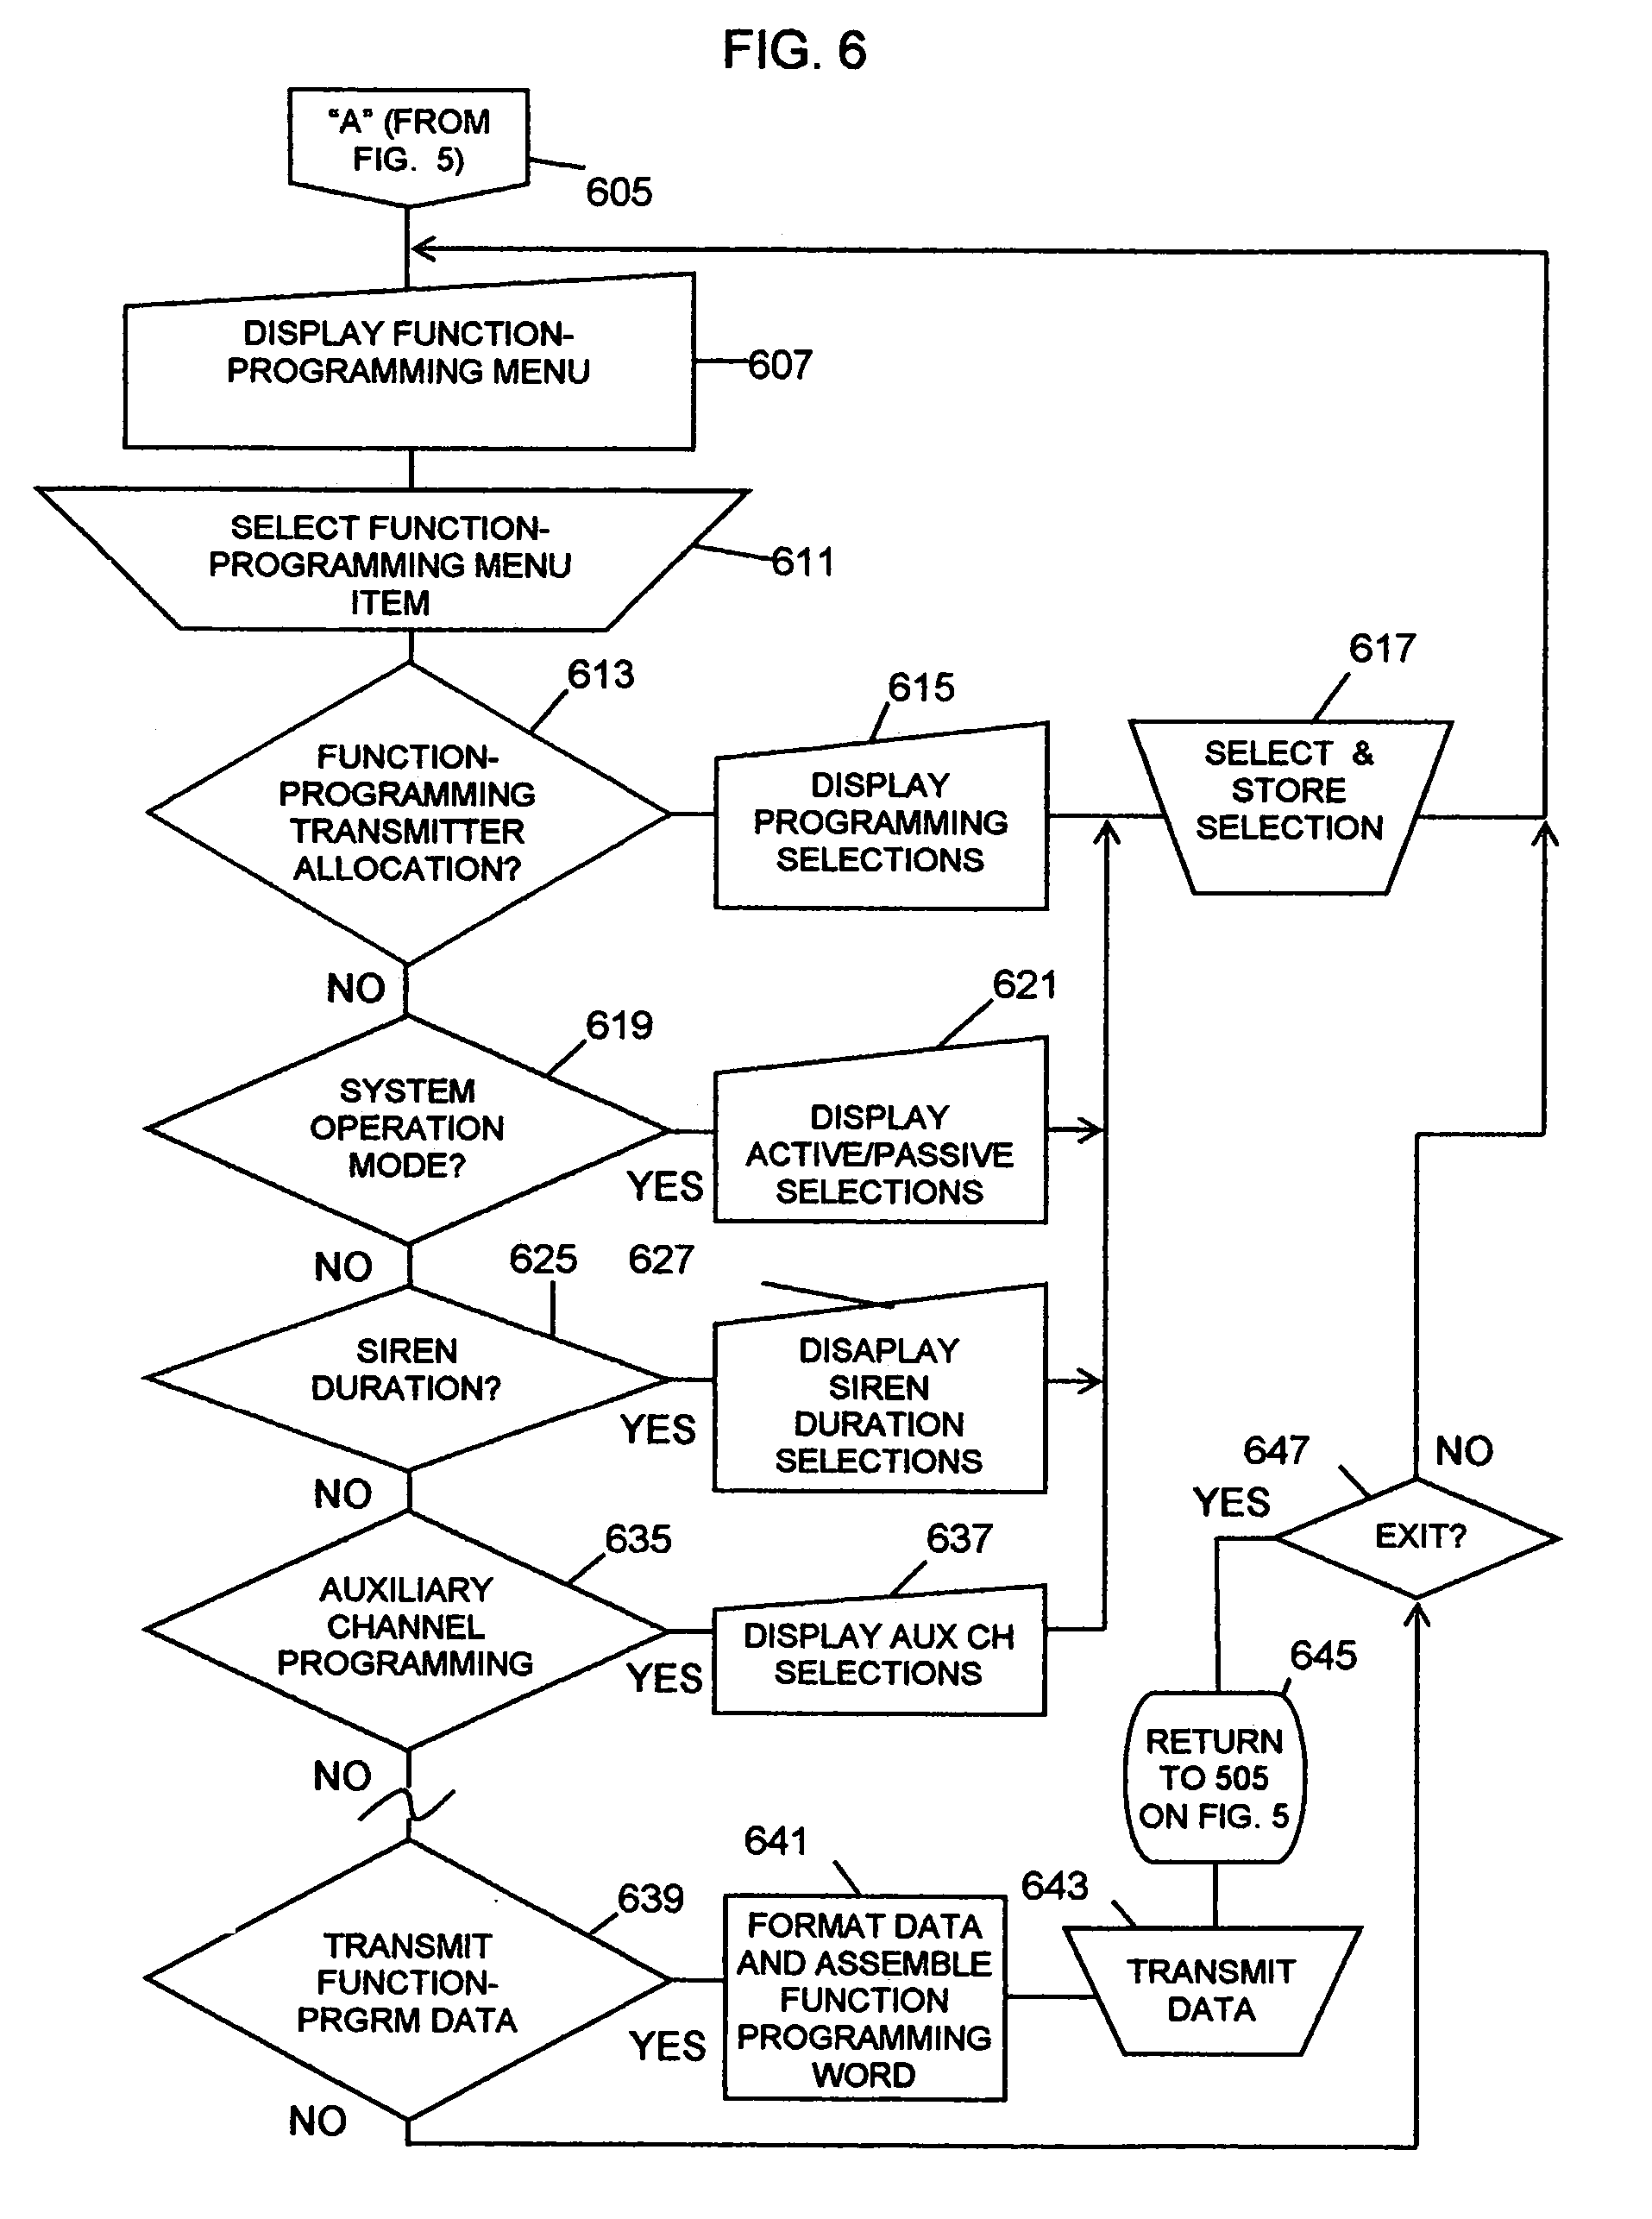 Switch case flowchart example create a flowchart patent us7248150 menu driven remote control transmitter google patent drawing opalskyviewthuducfo gallery flow chart switch case nvjuhfo Gallery